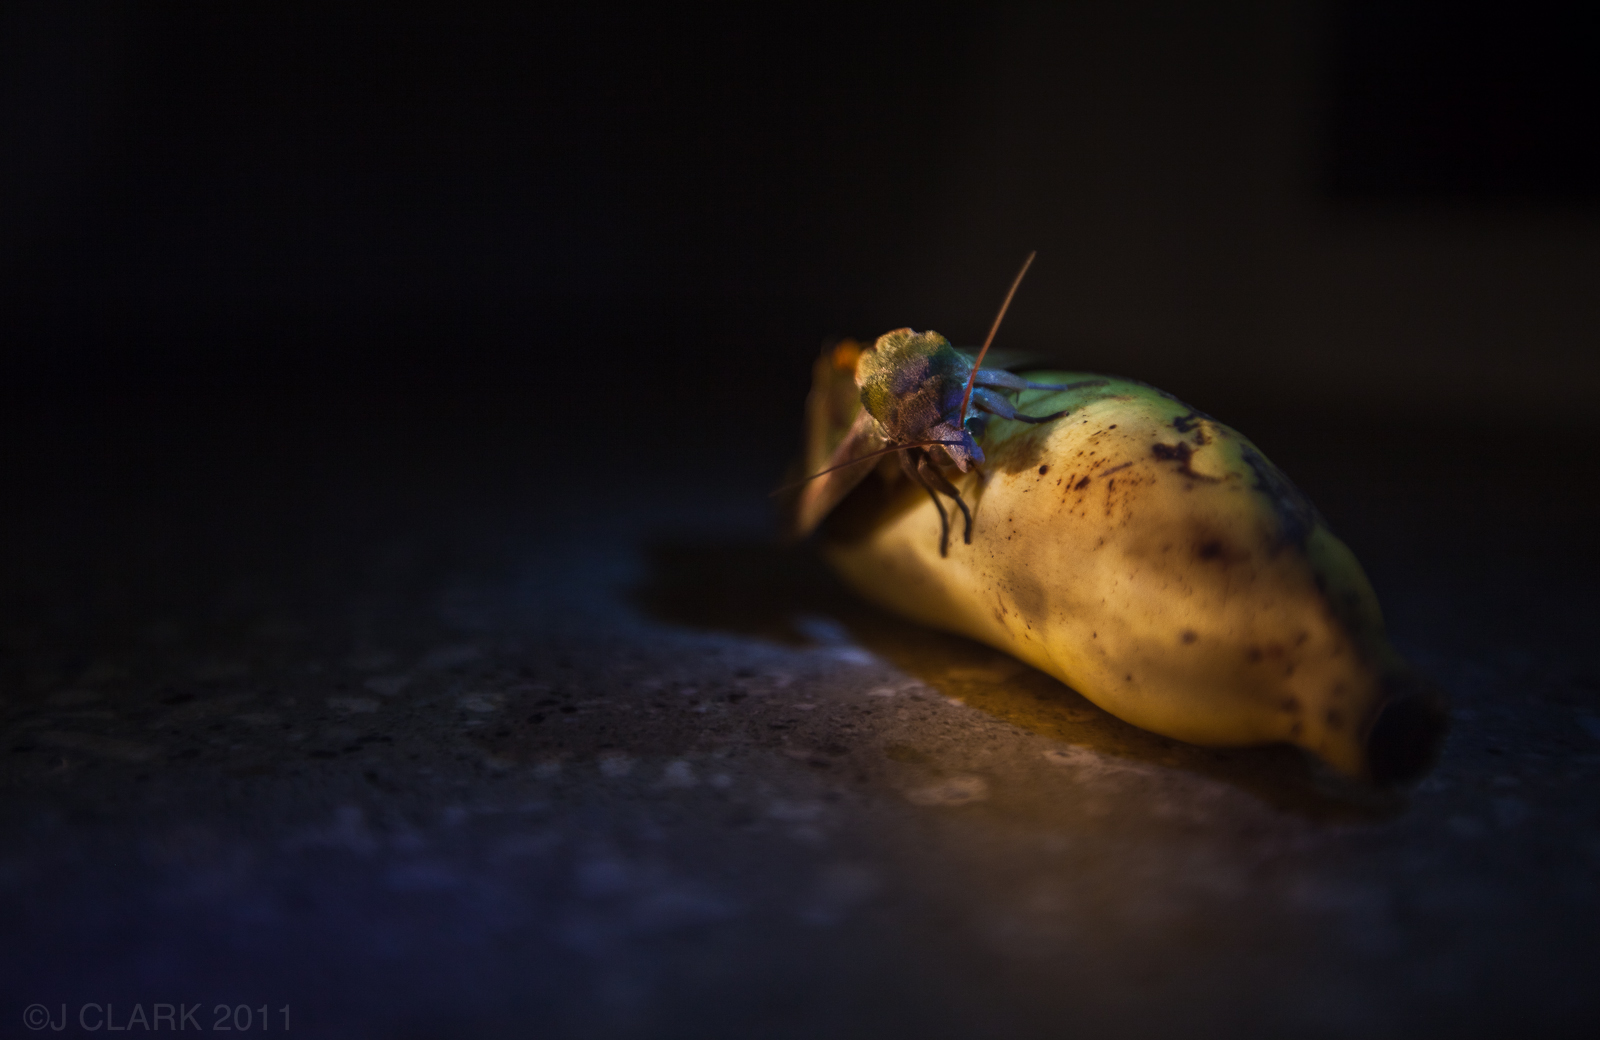 BANANA MOTH EATING A MEAL